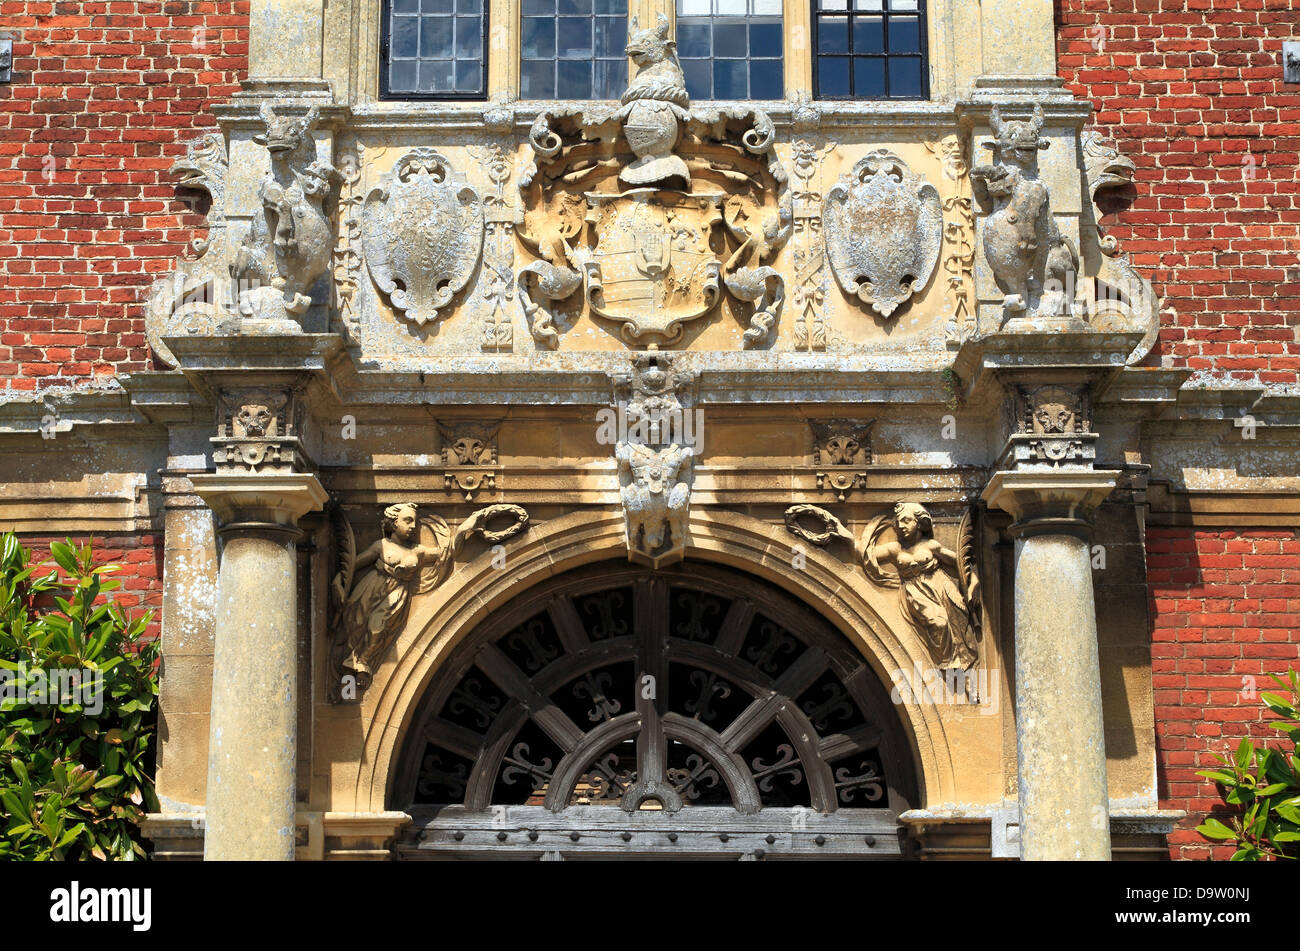 Blickling Hall, Norfolk, detail of heraldry above south entrance, England UK - Stock Image